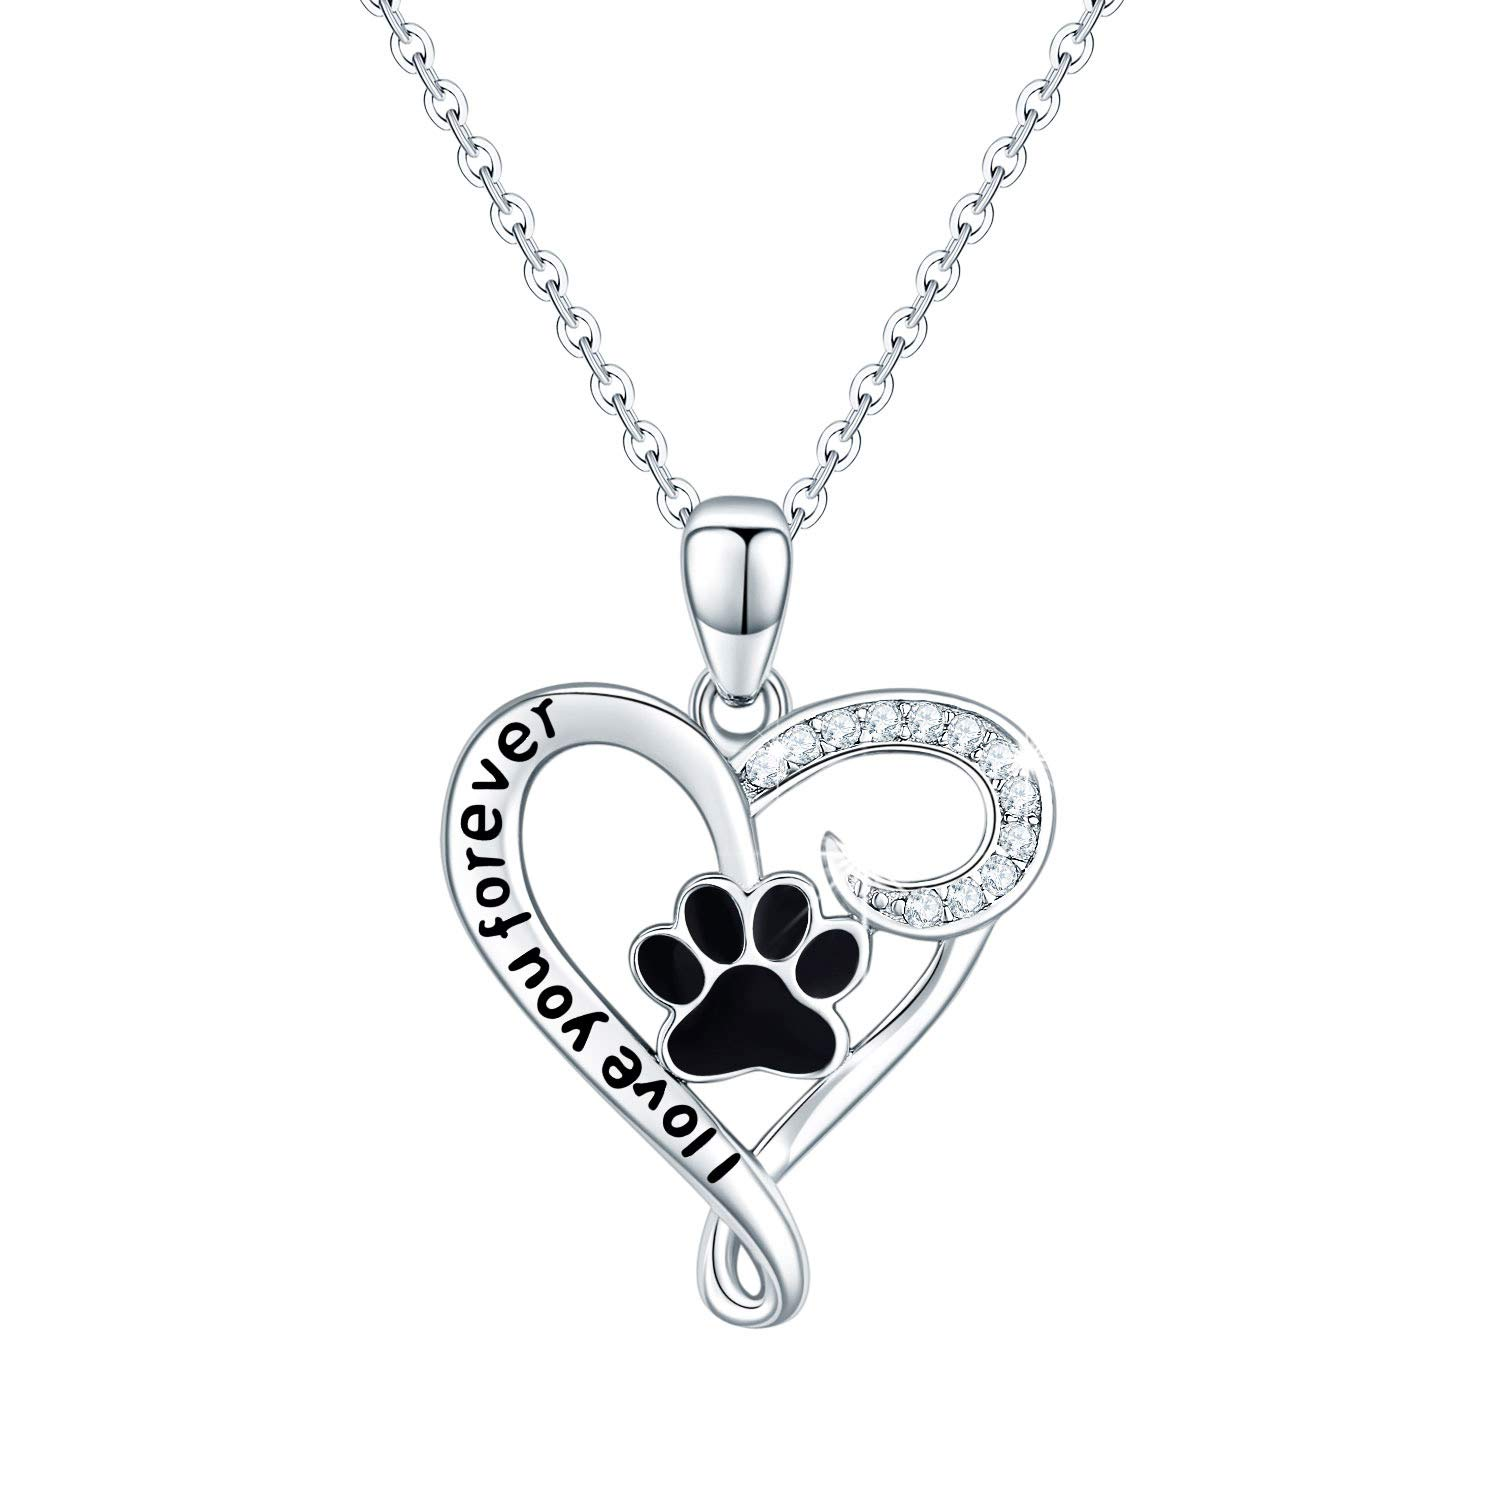 925 Sterling Silver Cute Animal Necklace Stocking Stuffers Christmas Gifts for Her Heart Pendant Jewelry Birthday Gift